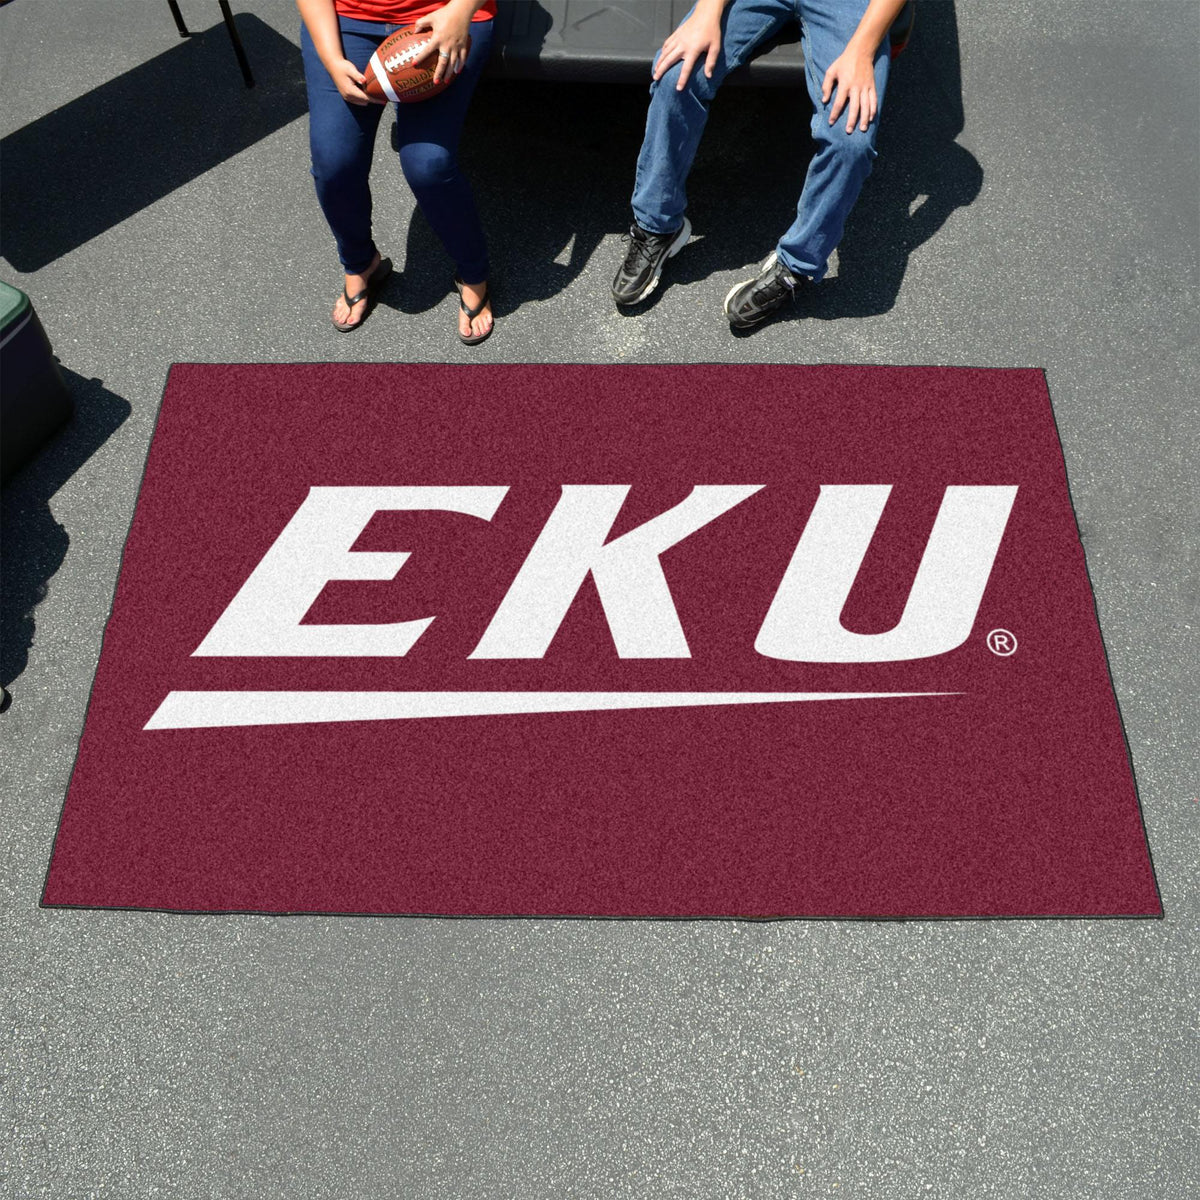 Collegiate - Ulti-Mat: A - L Collegiate Mats, Rectangular Mats, Ulti-Mat, Collegiate, Home Fan Mats Eastern Kentucky